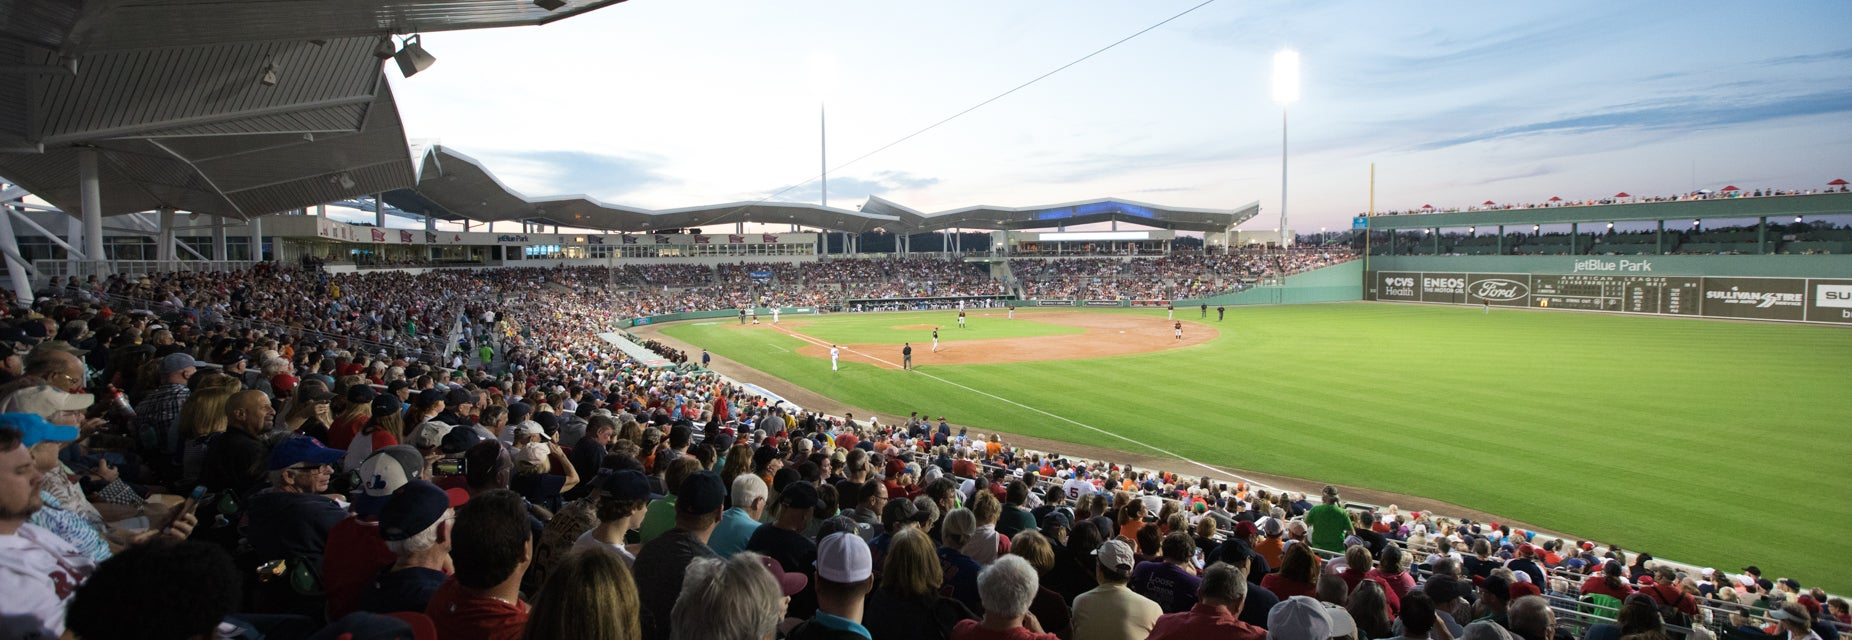 Seat view from RT Field Grandstand